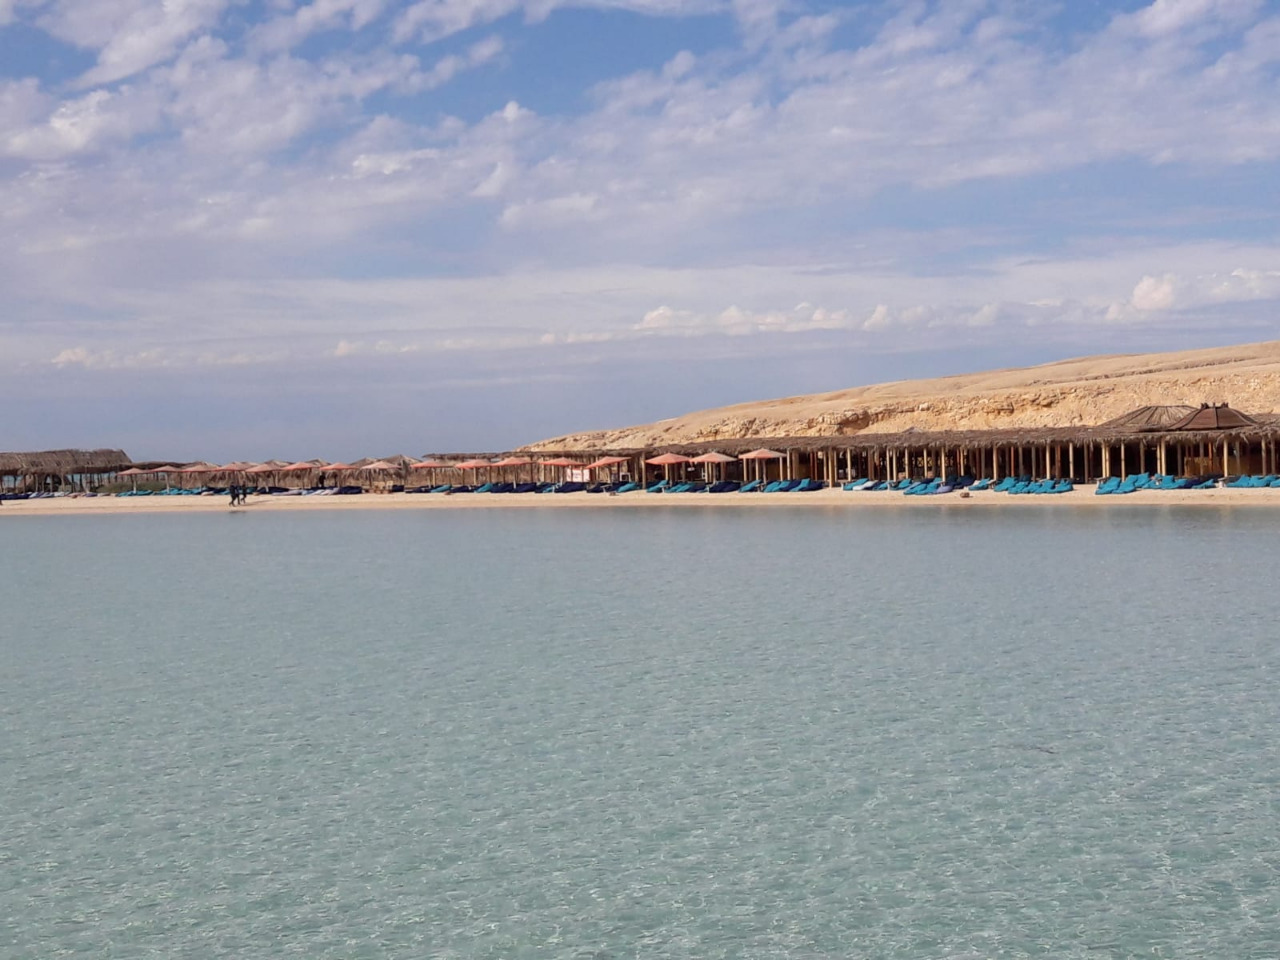 Orange Bay - Schnorcheln am Karibik Strand ab Makadi Bay/Sahl Hasheesh